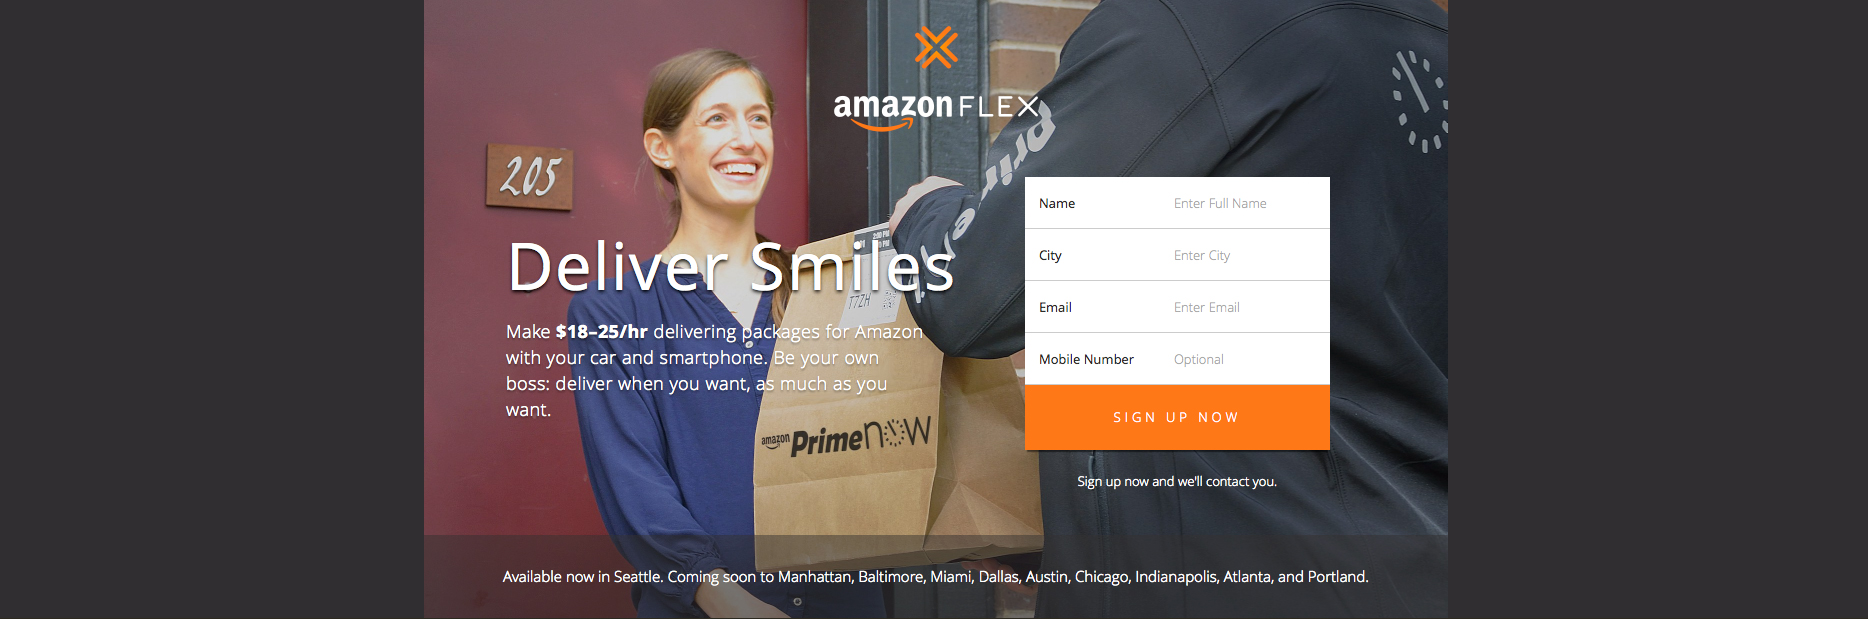 With its new Flex service, Amazon will pay you to deliver packages